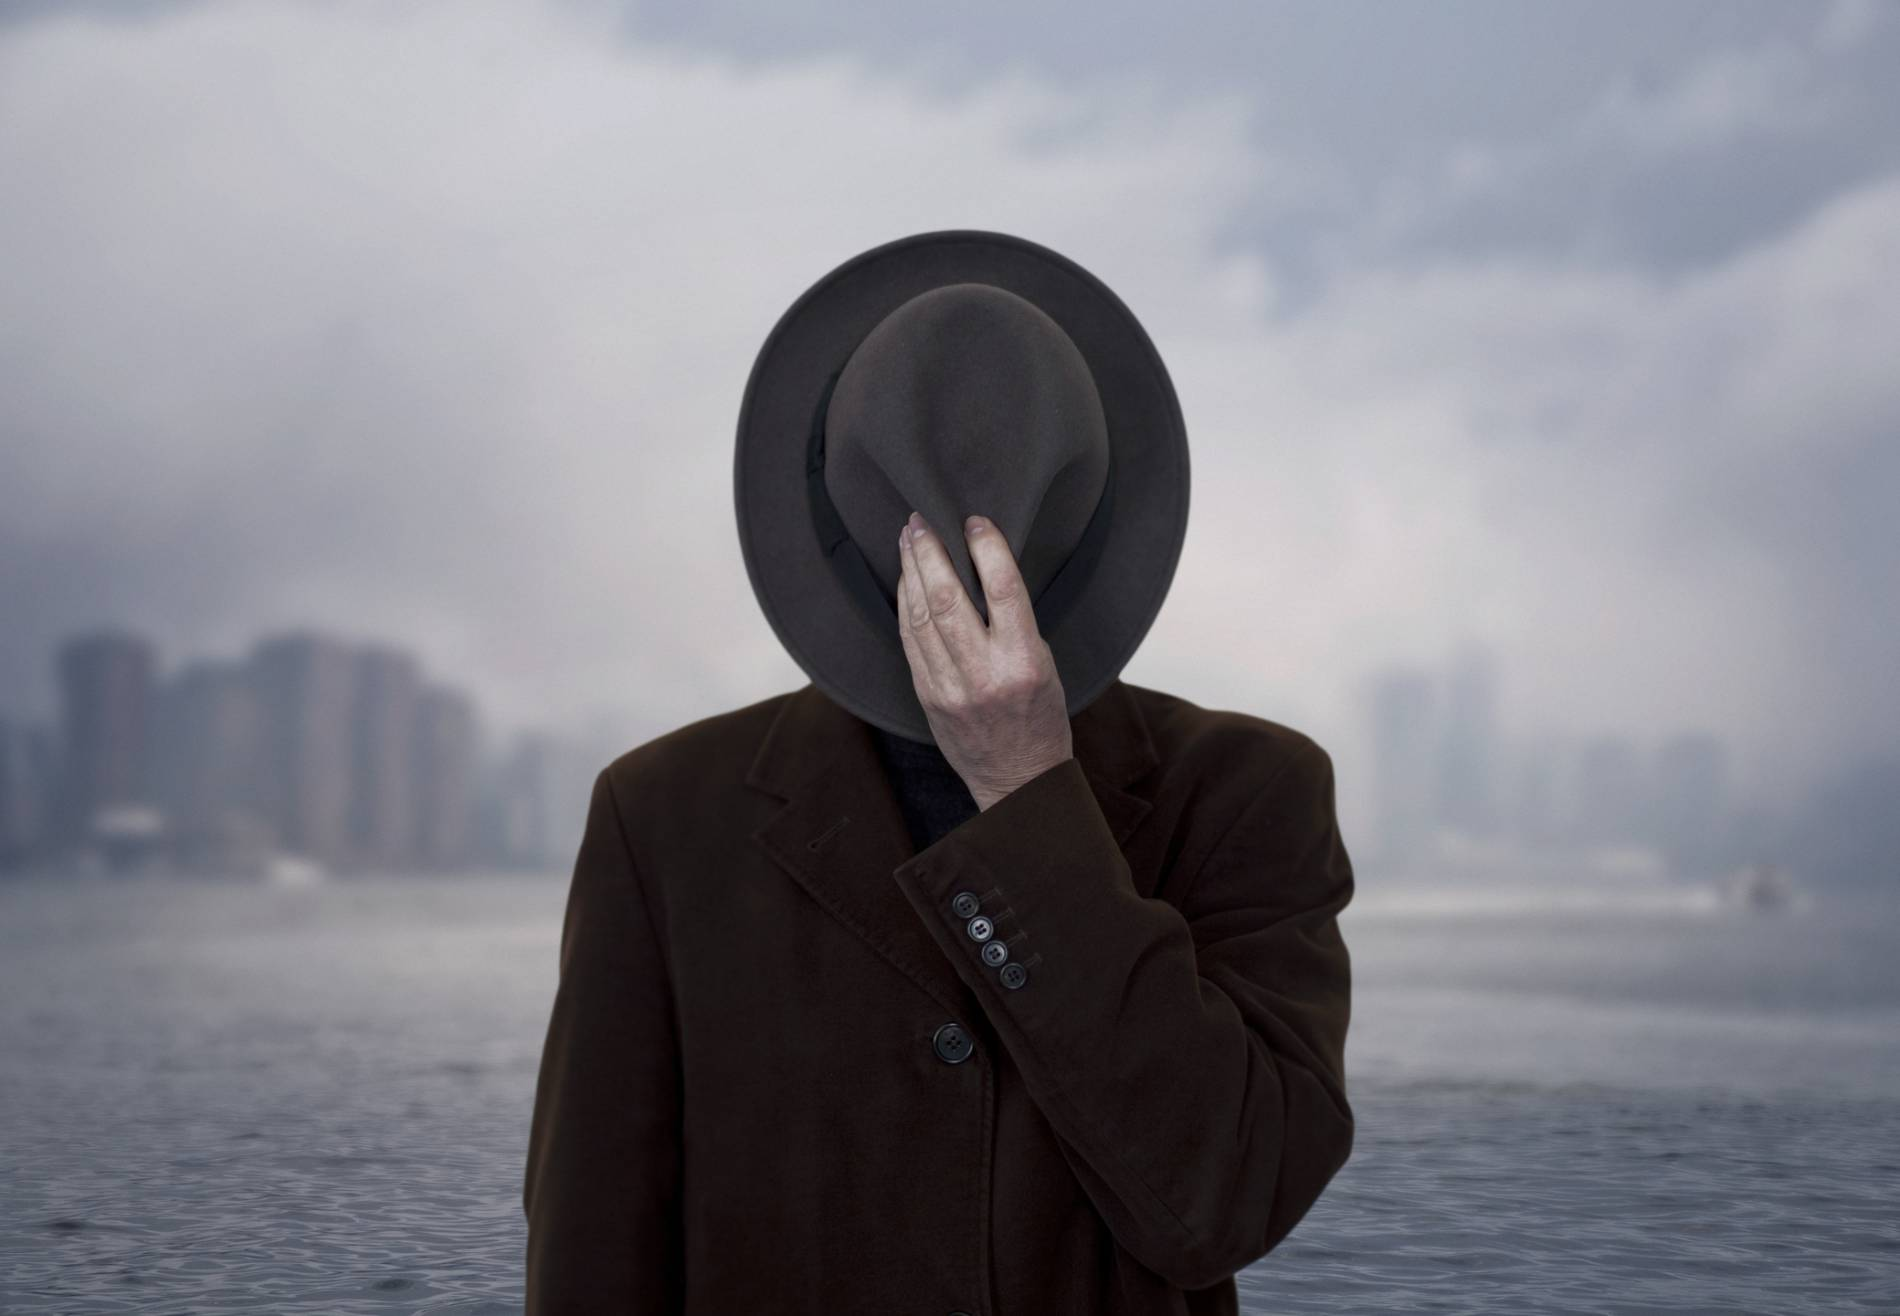 Portrait of a man with face covered by the hat.